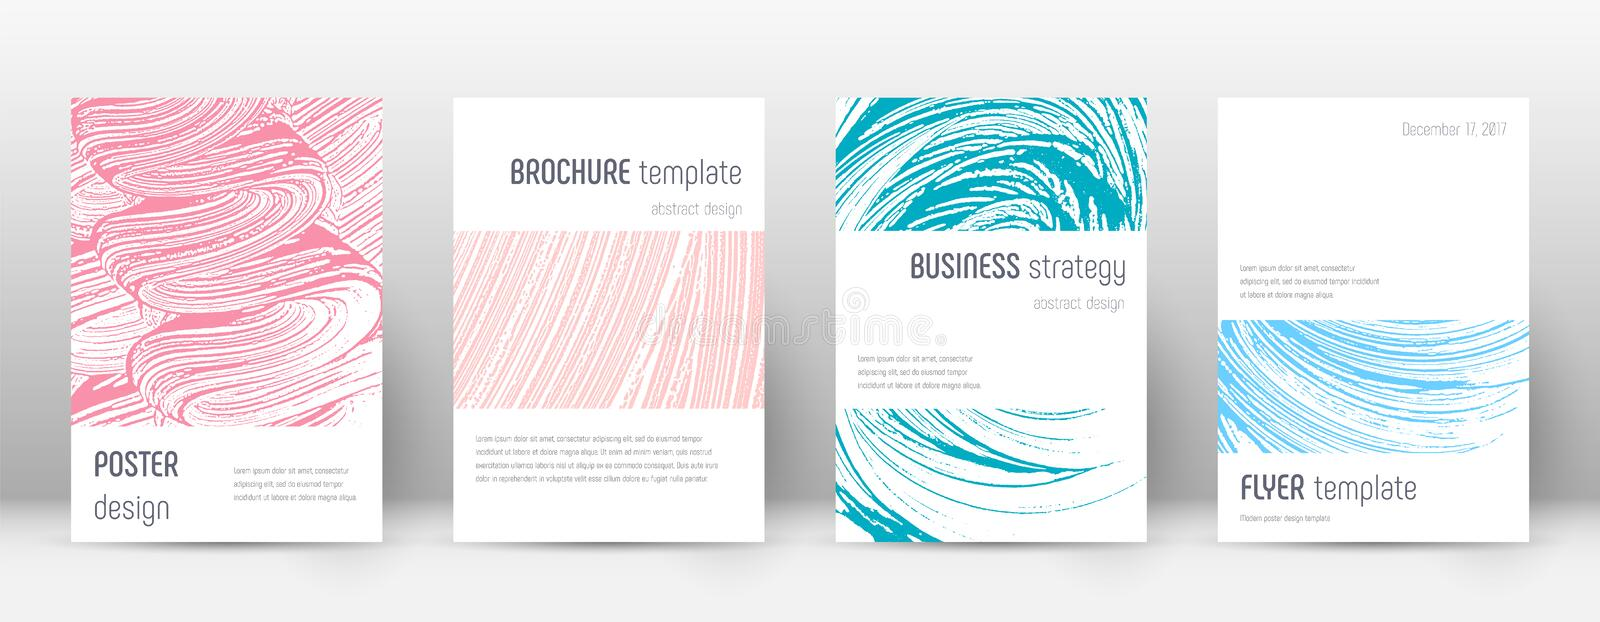 Cover page design template. Minimalistic brochure. Layout. Comely trendy abstract cover page. Pink and blue grunge texture background. Astonishing poster vector illustration